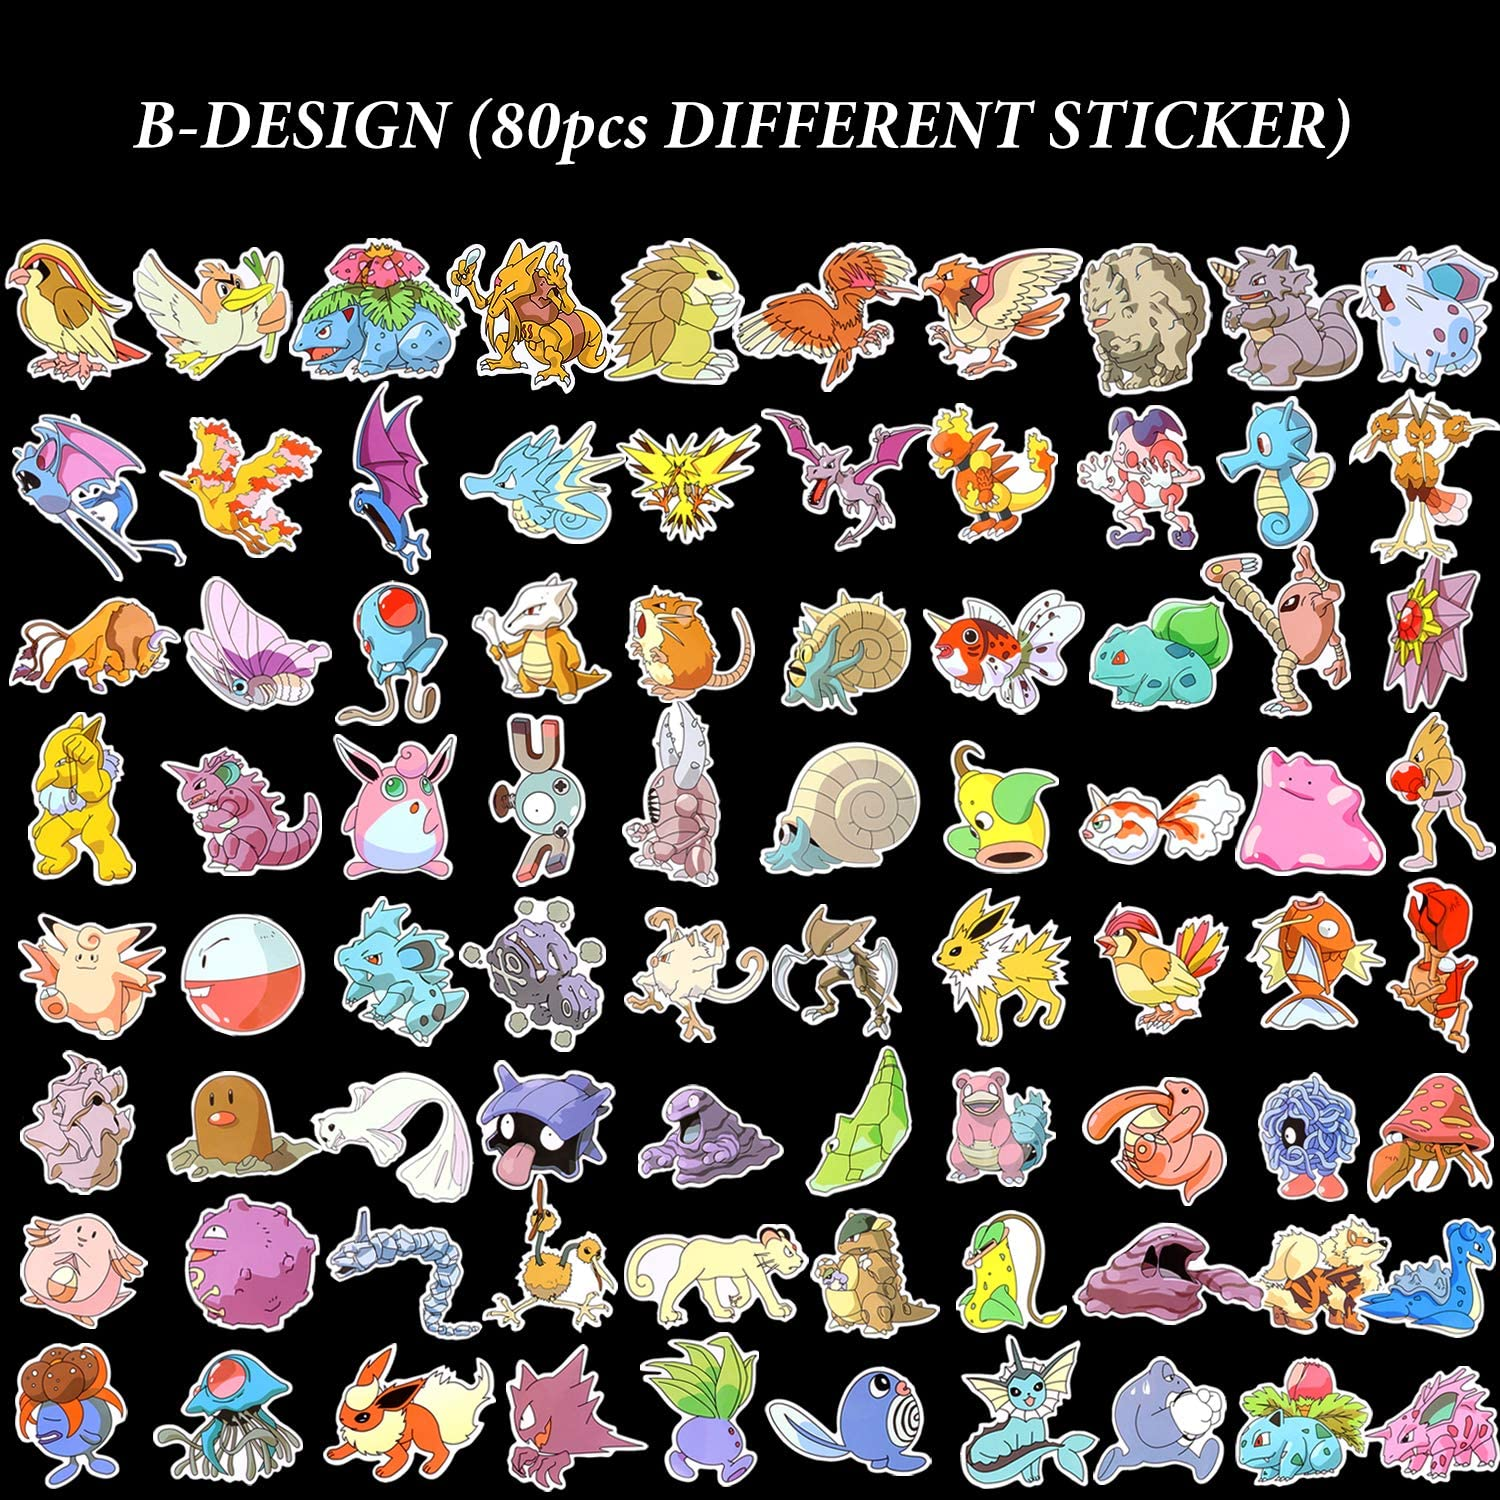 Laptop Stickers of Pokemon Bicycles Waterproof Skateboards A 80pcs Cool Stickers DIY Party Supplies Motorcycles Sticker Pack Stylish Graffiti Sticker Set for Cars Suitcases Non-Repeatable